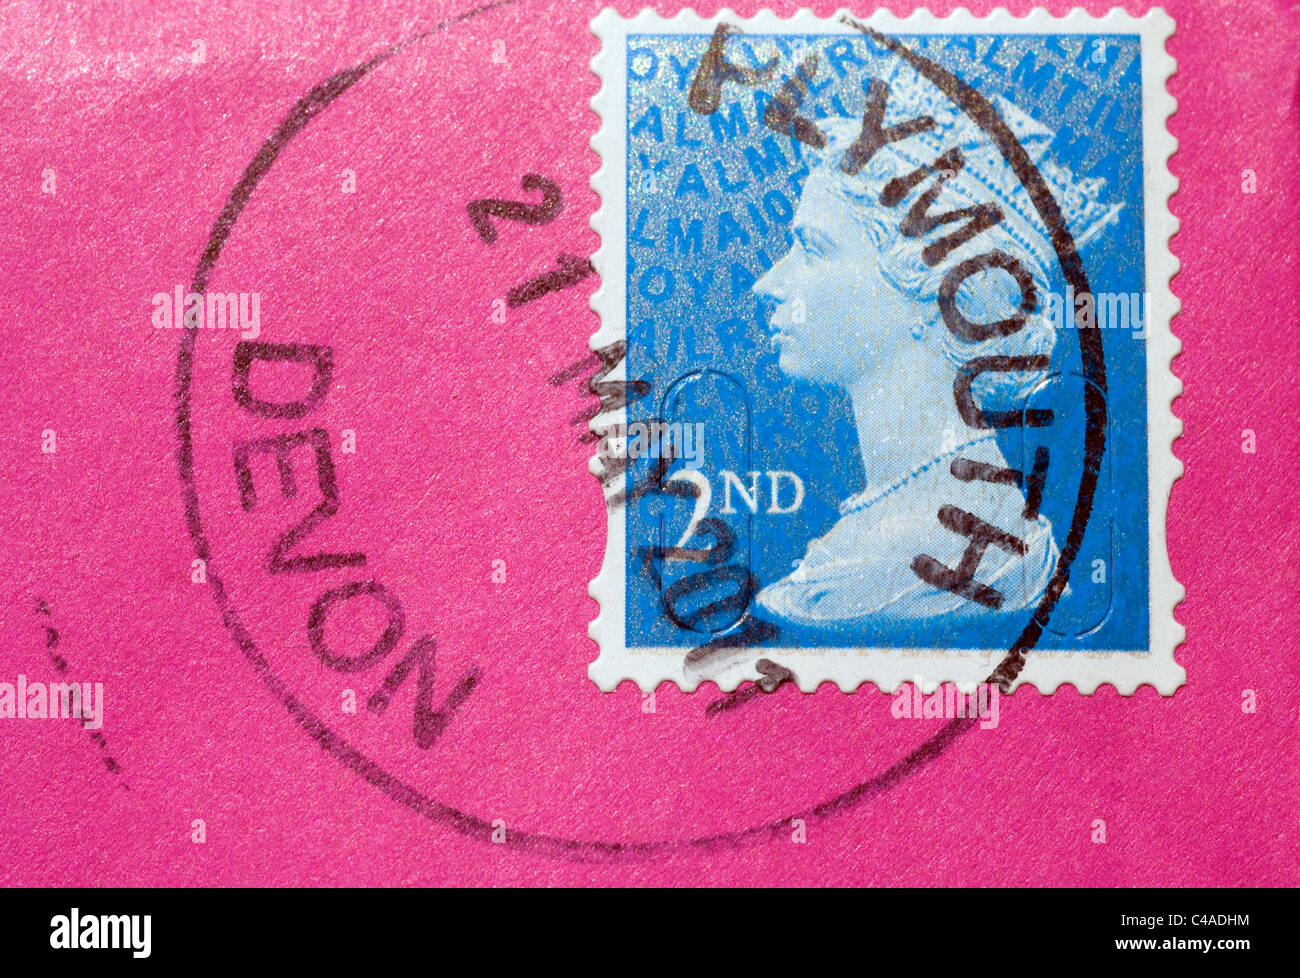 A Second Class (2nd) light blue Royal Mail Post Office Postage Stamp with HRH Queen Elizabeth II head - Stock Image